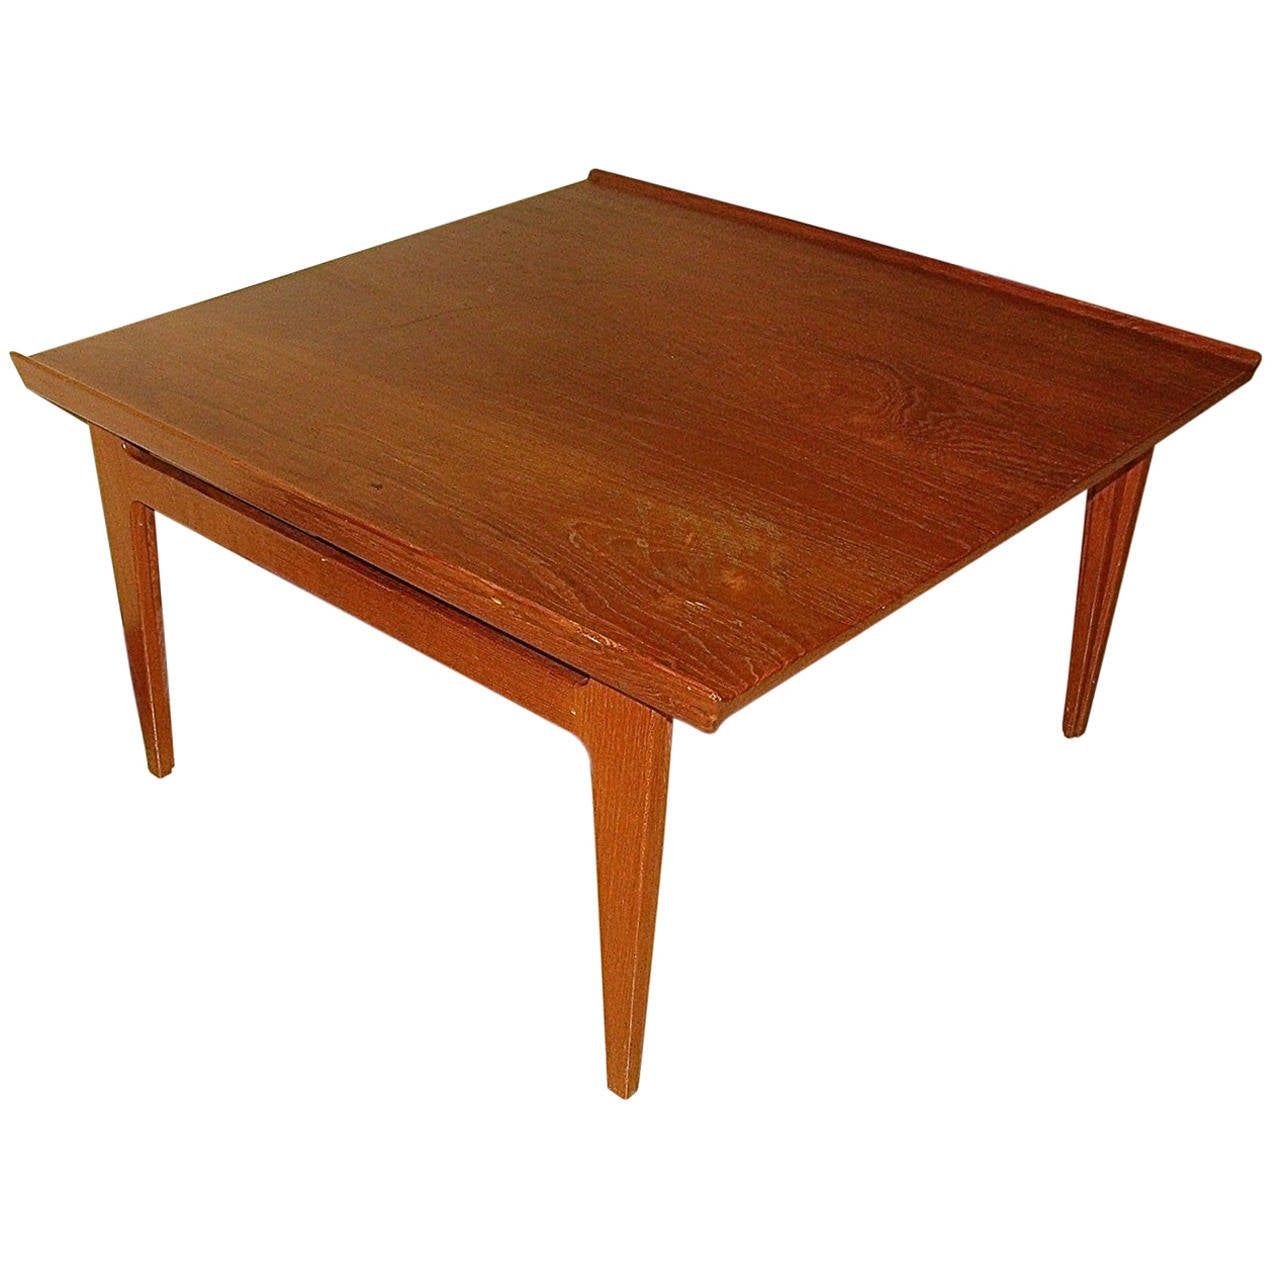 Finn juhl danish modern mid century coffee table at 1stdibs for Mid century modern coffee table